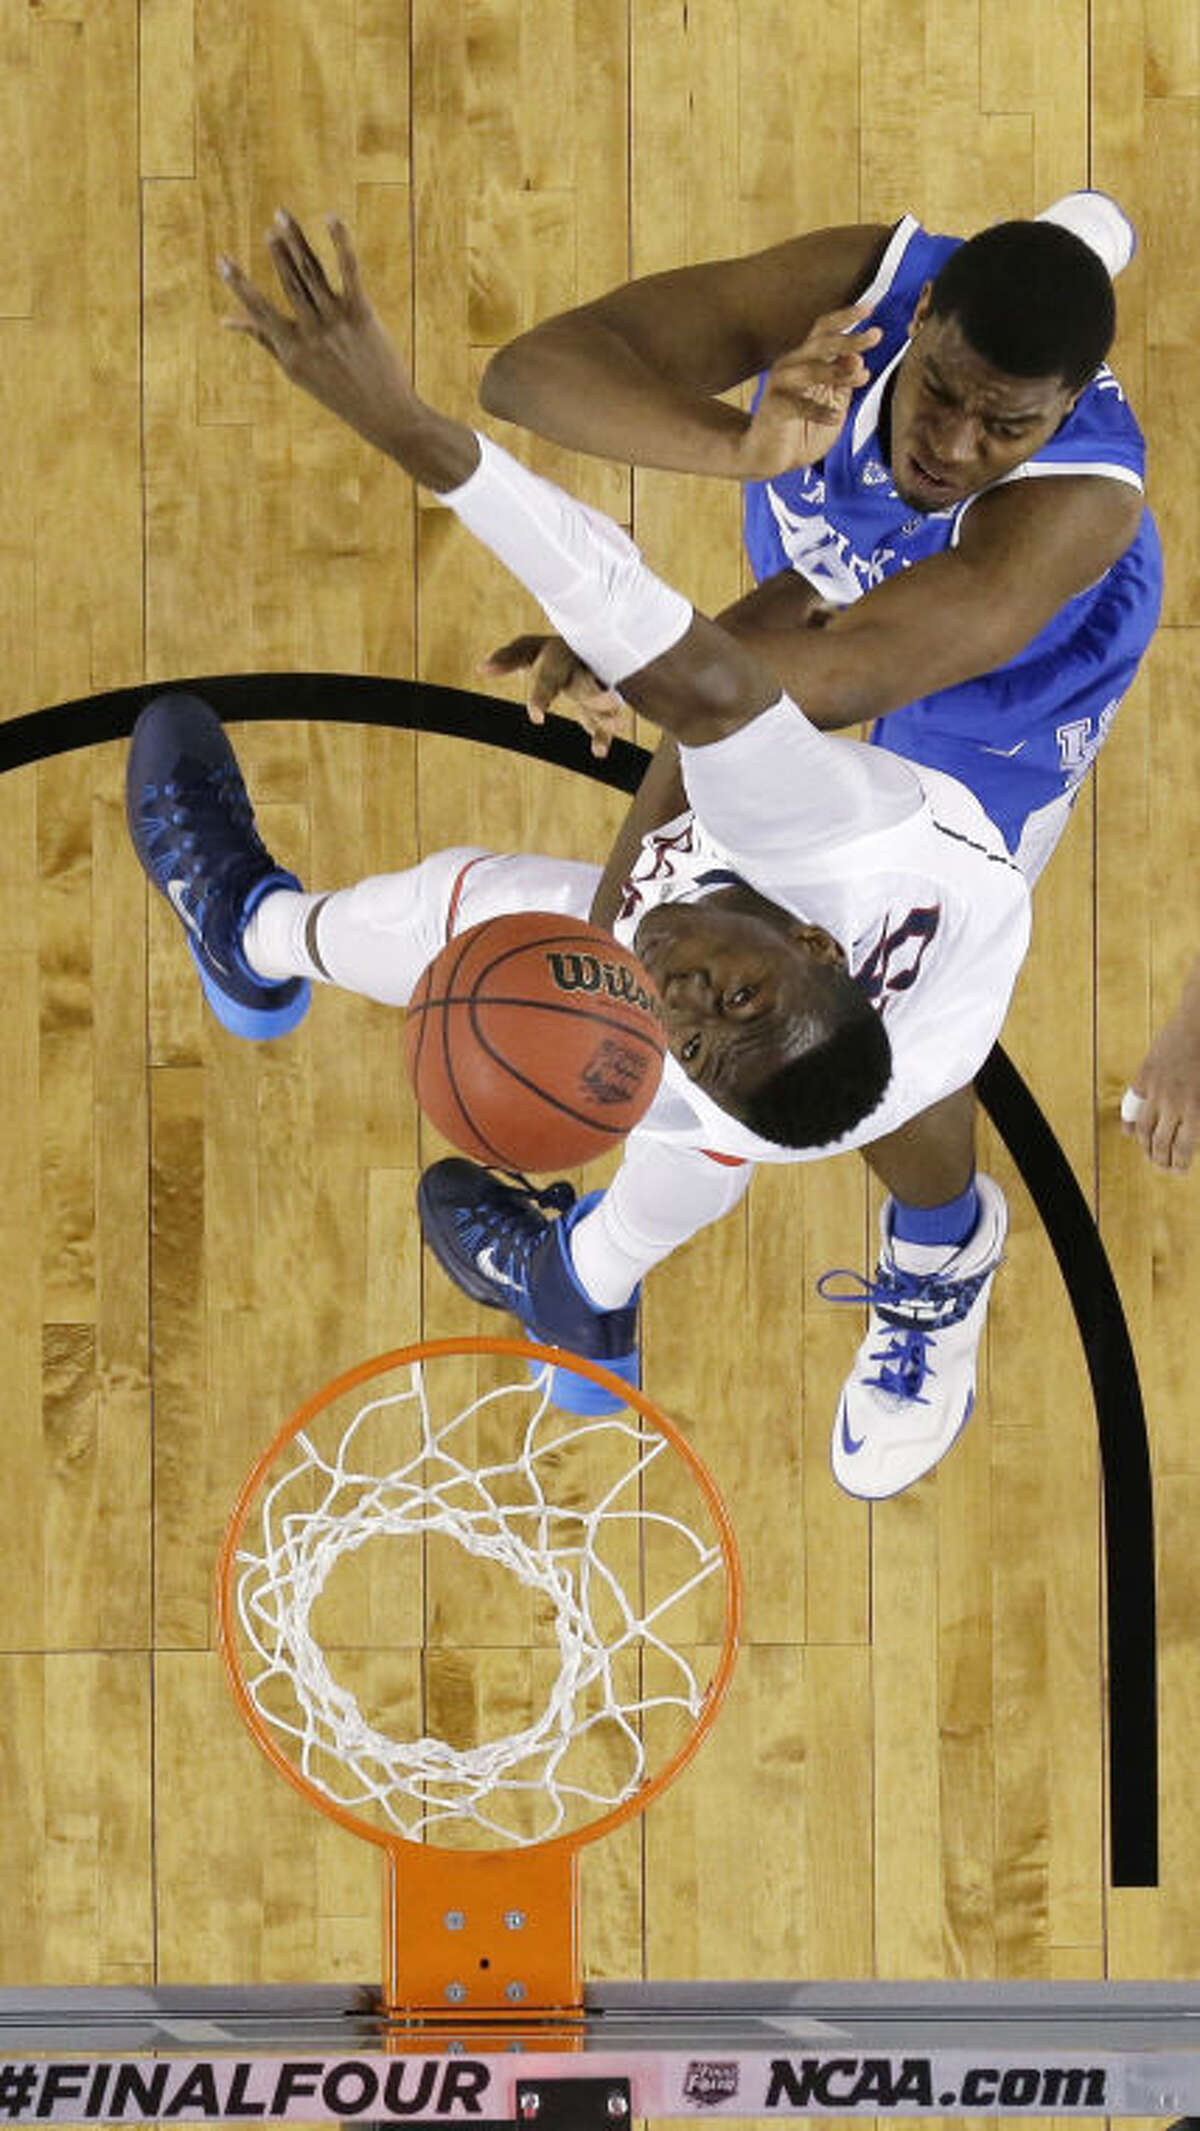 Kentucky center Dakari Johnson, top, fights for a rebound with Connecticut center Amida Brimah during the first half of the NCAA Final Four tournament college basketball championship game Monday, April 7, 2014, in Arlington, Texas. (AP Photo/David J. Phillip)